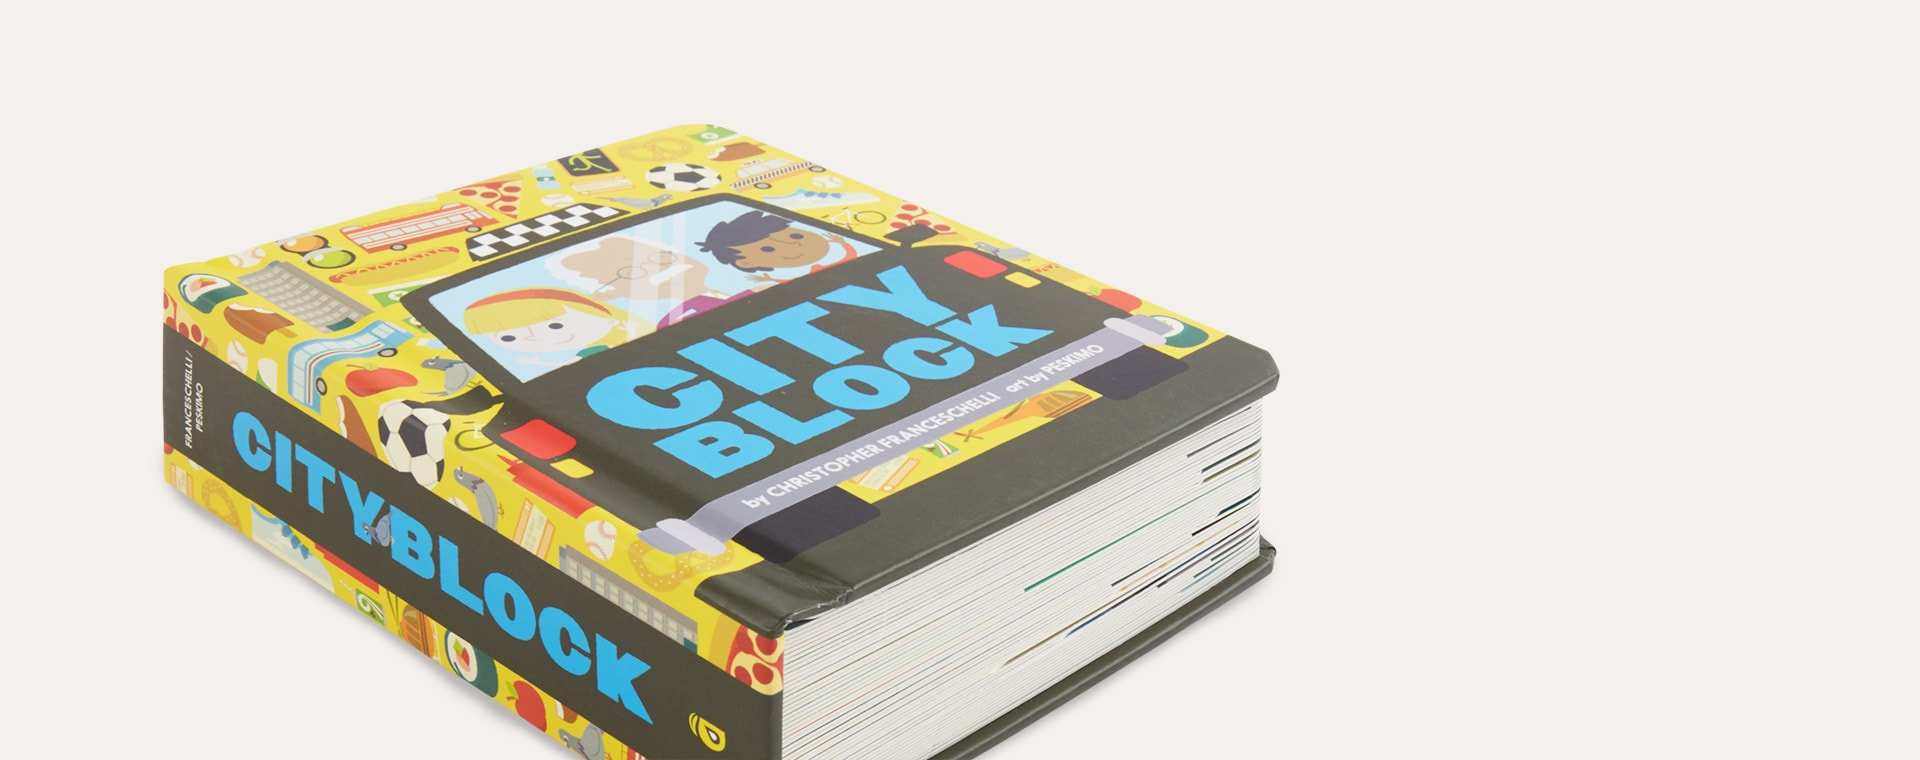 Multi Abrams & Chronicle Books Cityblock by Christopher Franceschelli